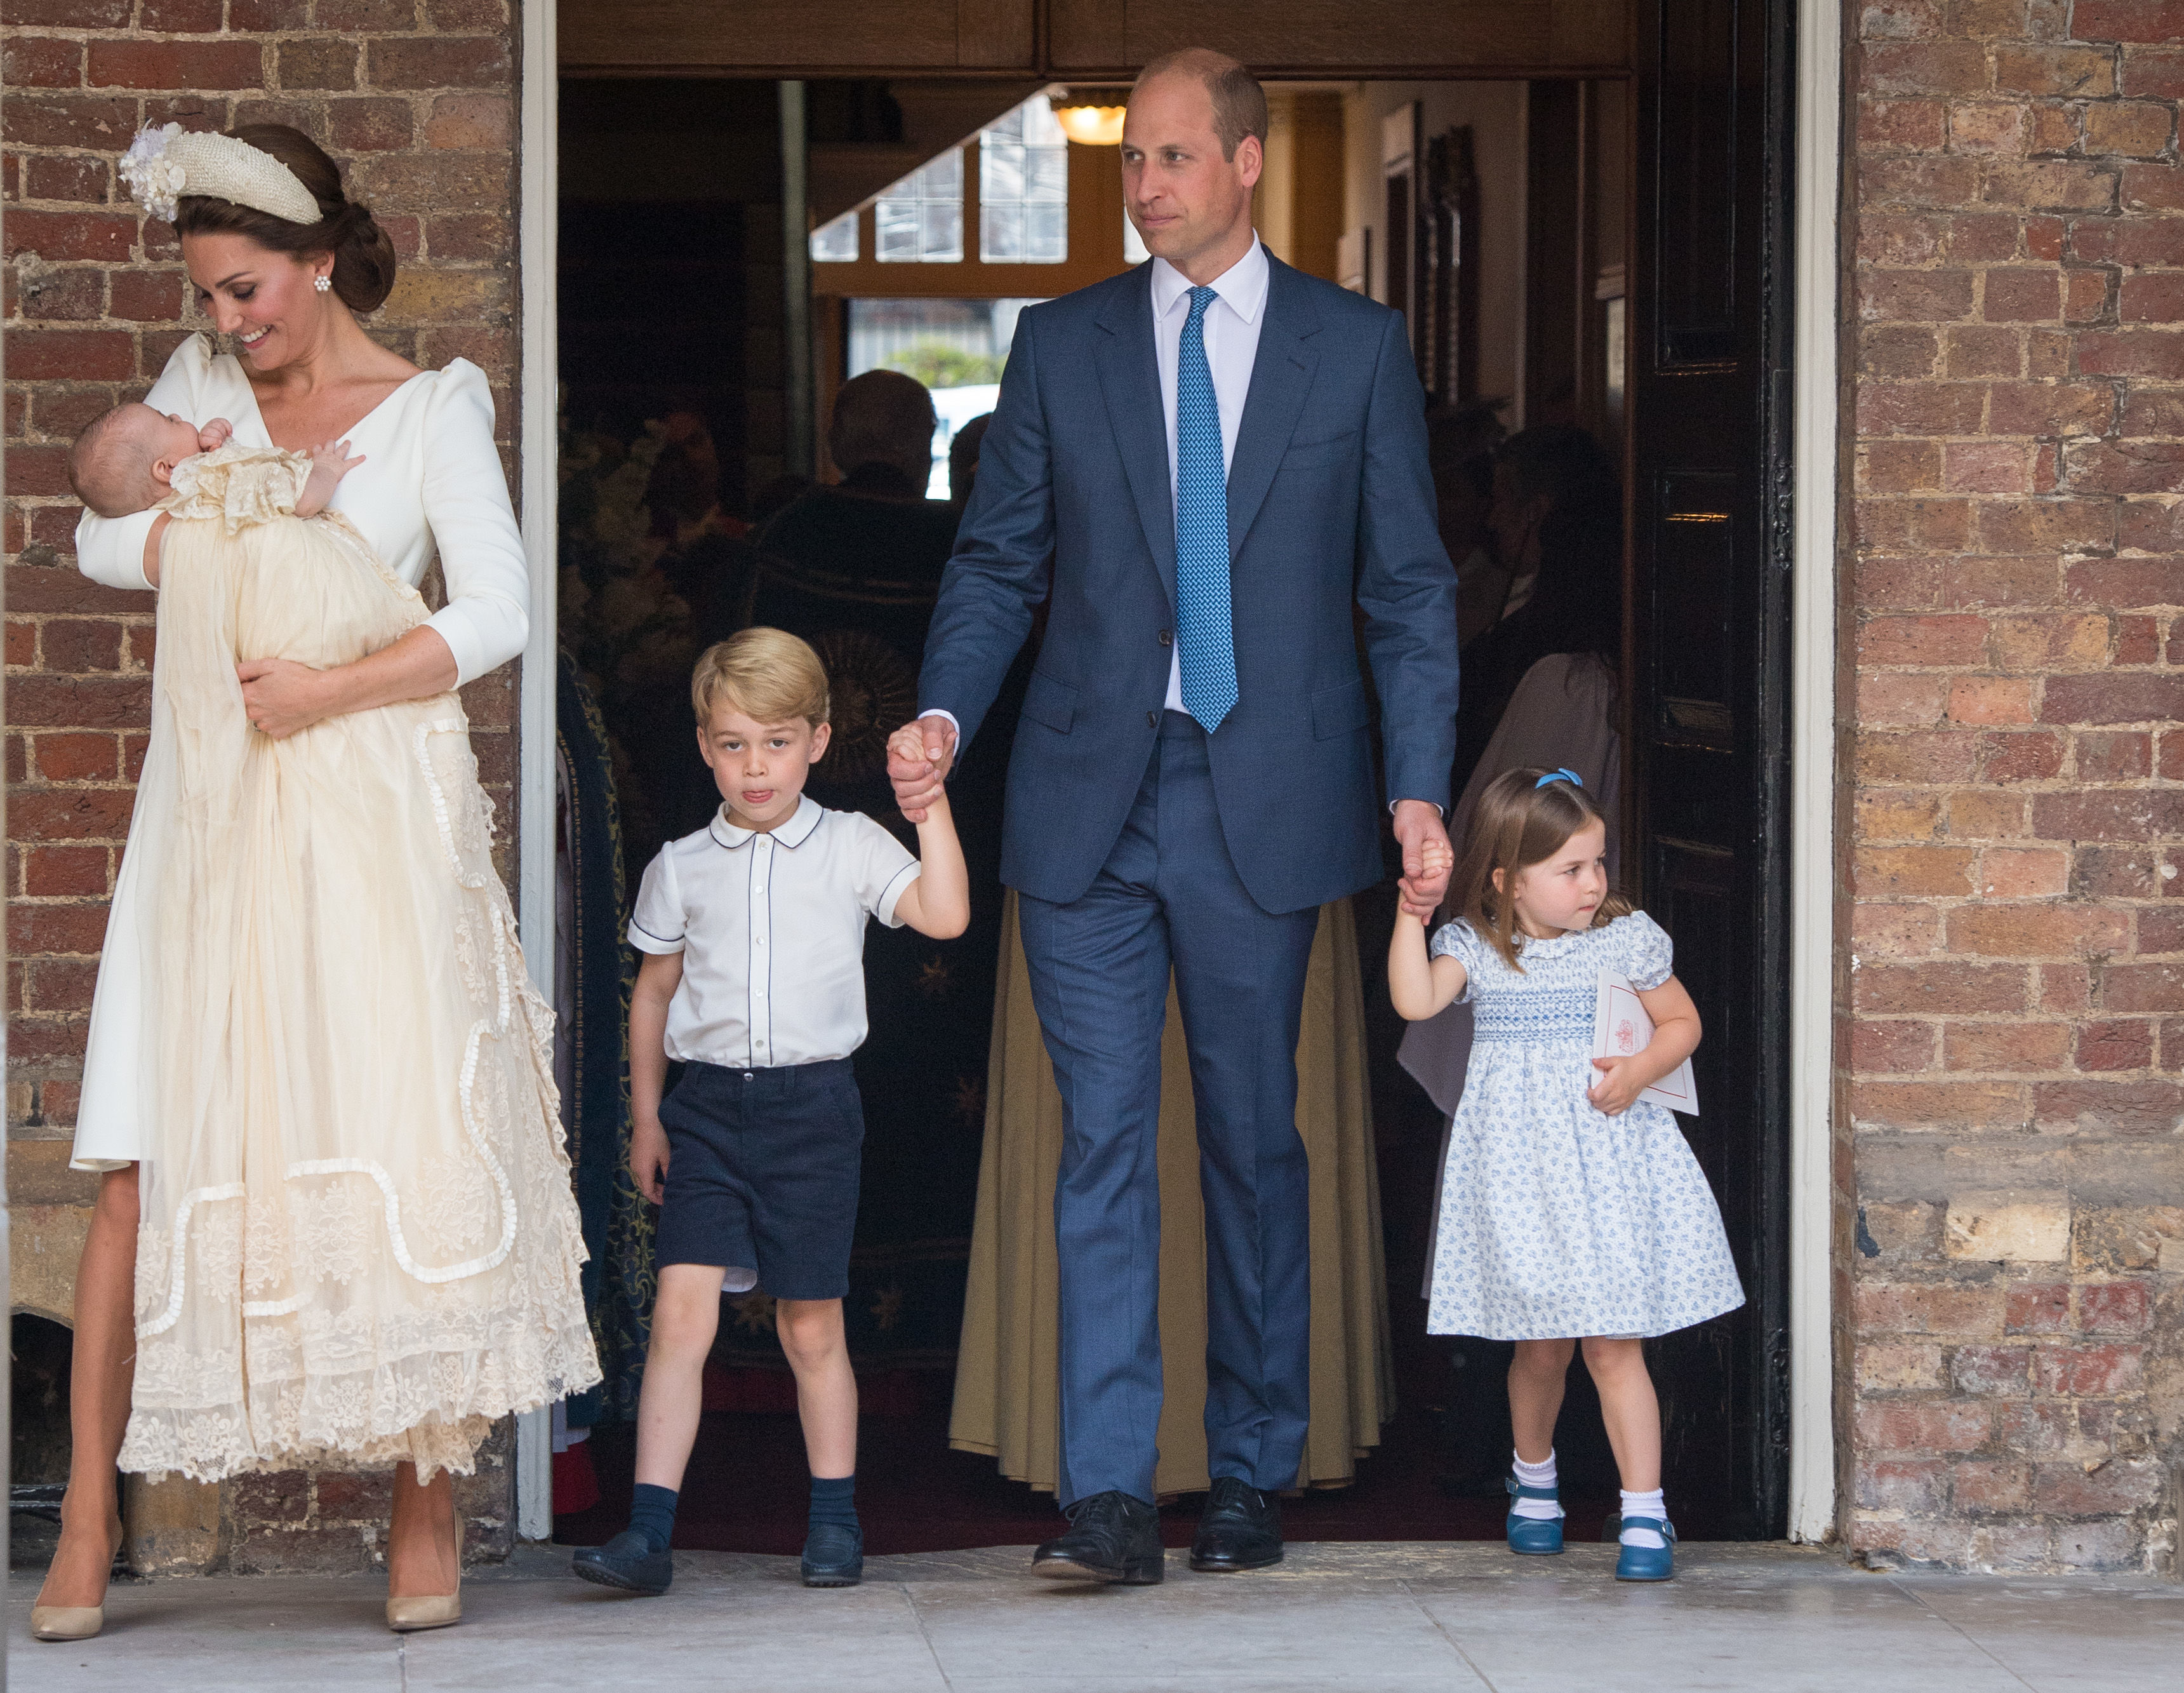 christening-of-prince-louis-of-cambridge-at-st-jamess-palace-6